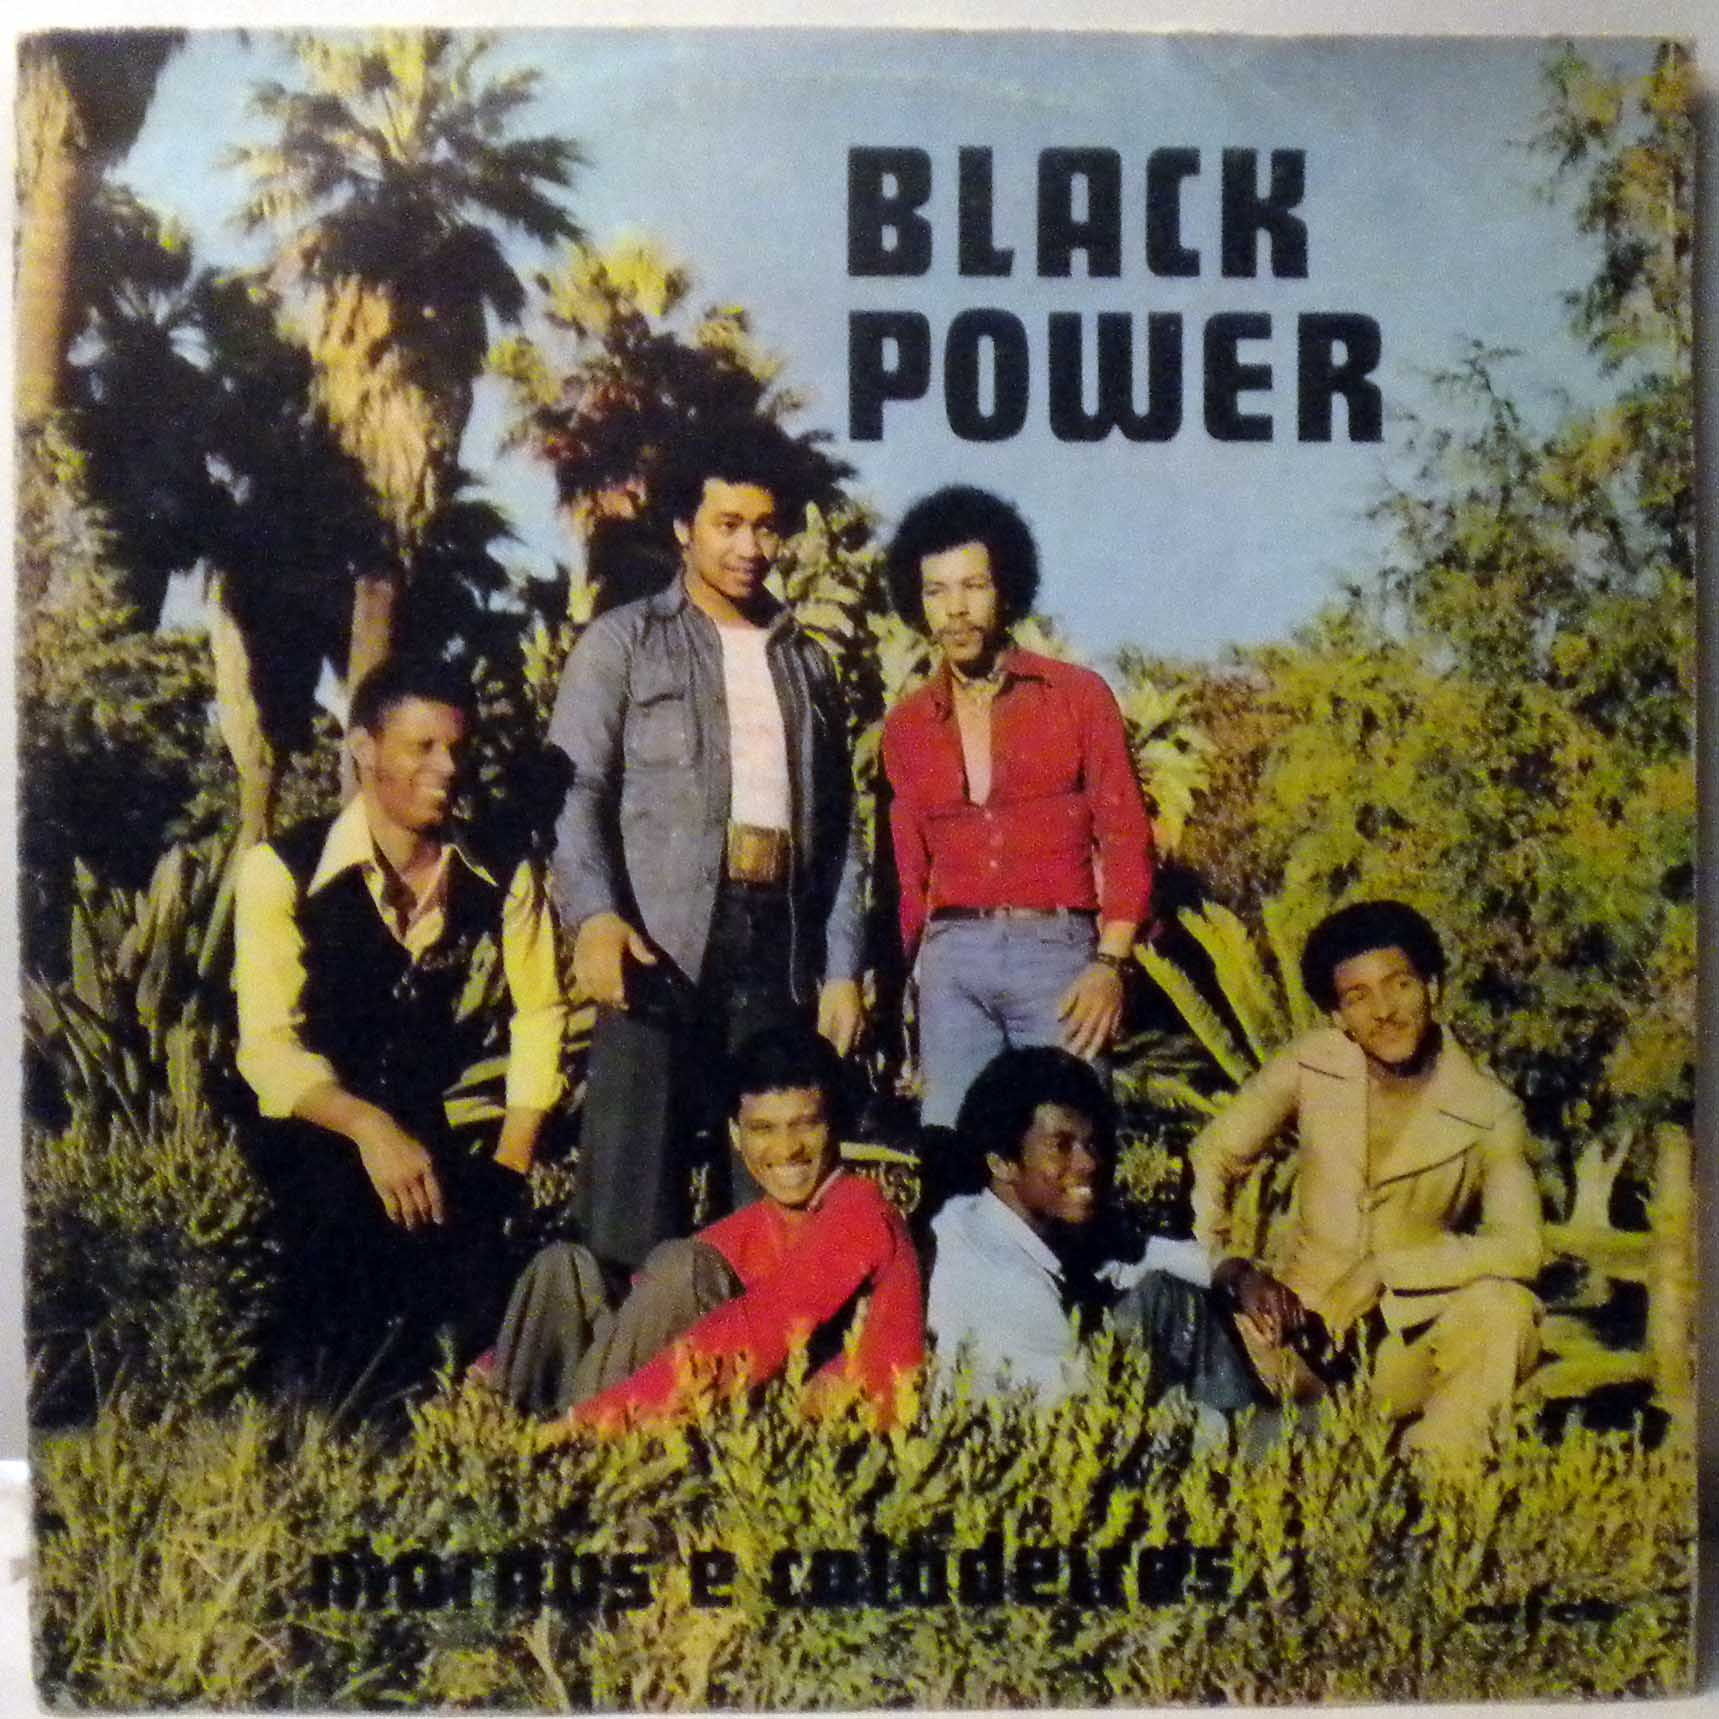 BLACK POWER - Mornas e coladeiras - LP